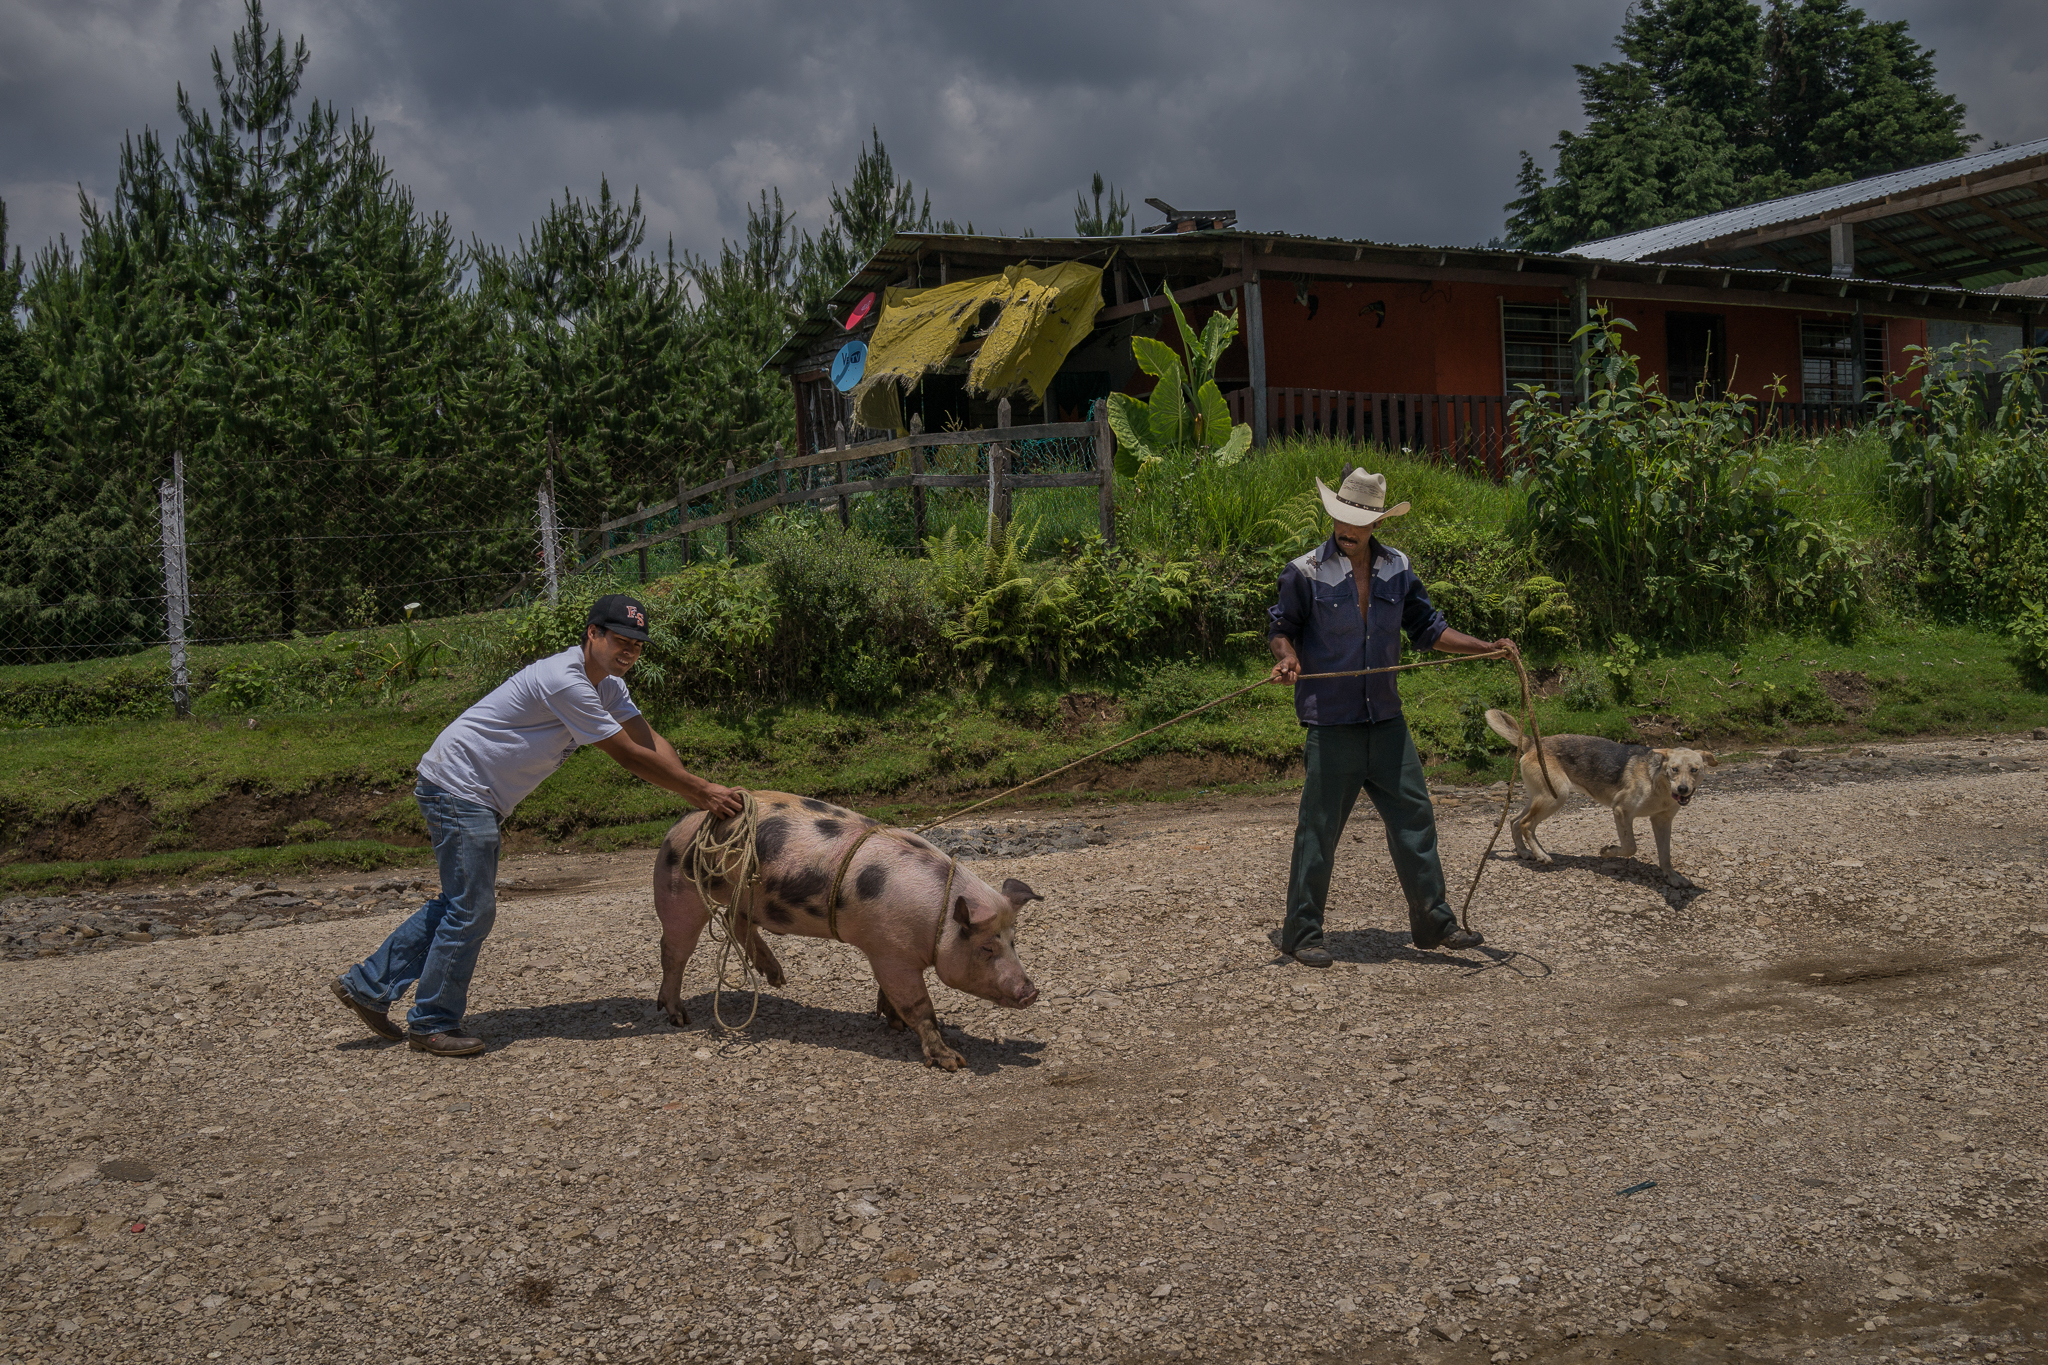 Campesinos take a pig to slaughter for a baptismal party in the town of El Zapotal, Veracruz.